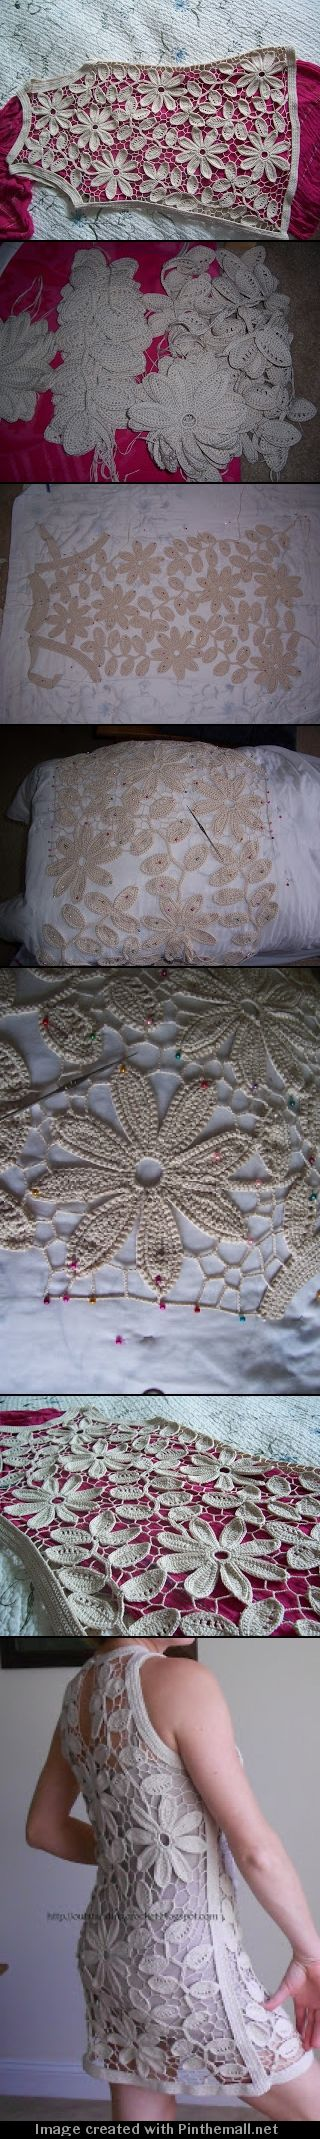 russian irish crochet from outstanding crochet - stunning dress.